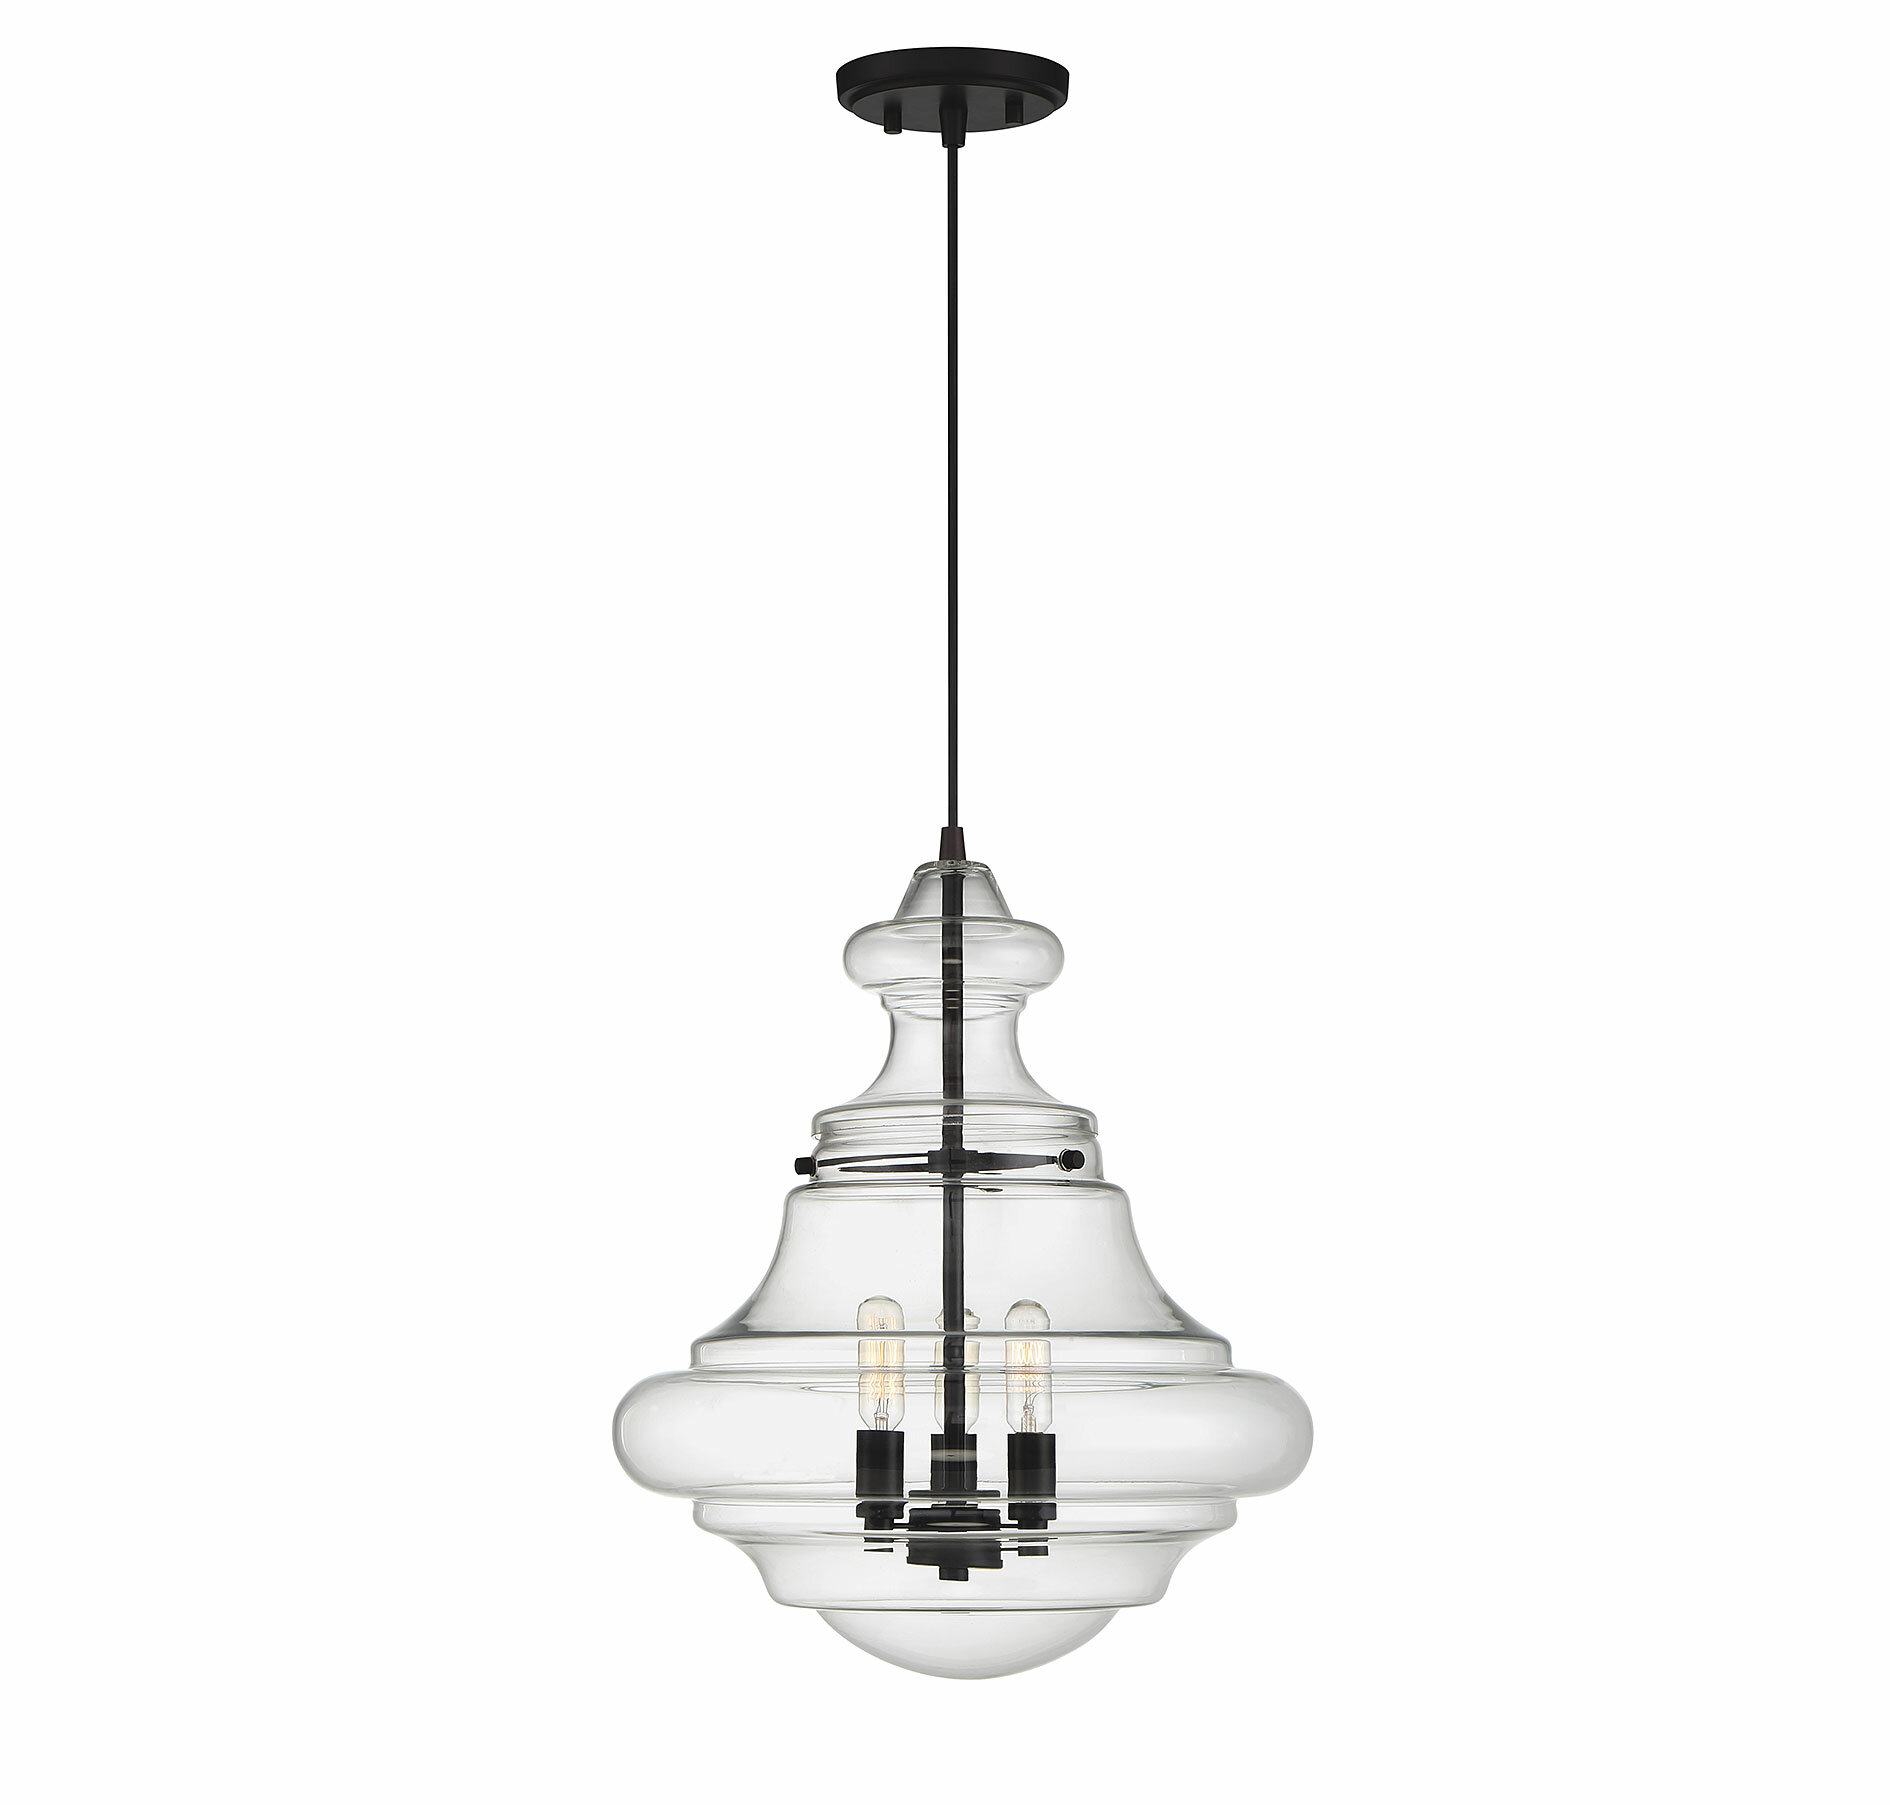 Edford 3 Light Single Schoolhouse Pendant